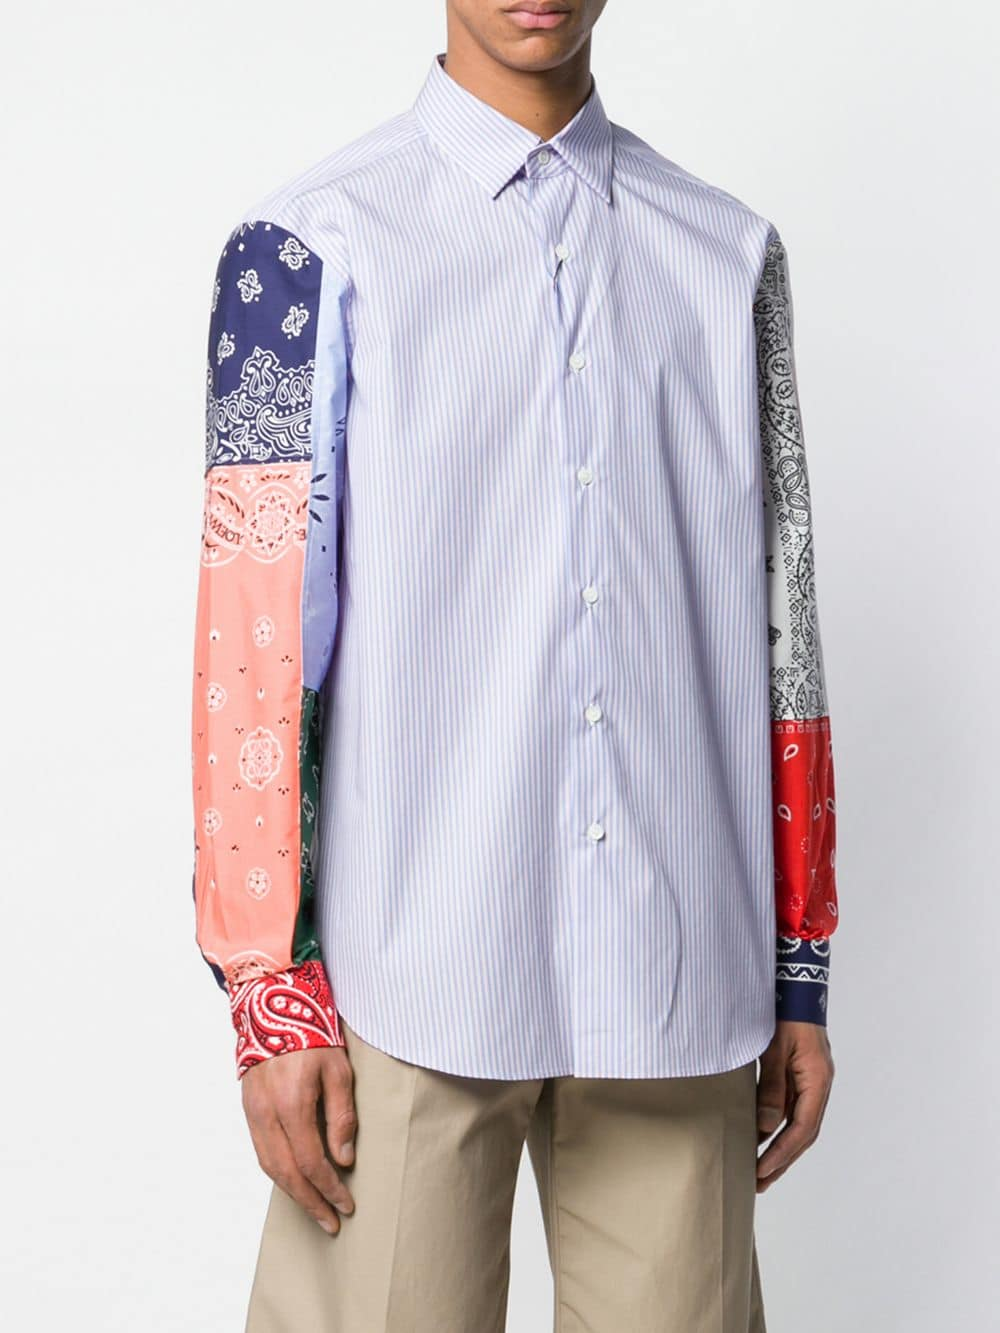 dc8689c6 https://milanstyle.com/products/printed-shirt-2327ed89-3e2b-47e6 ...